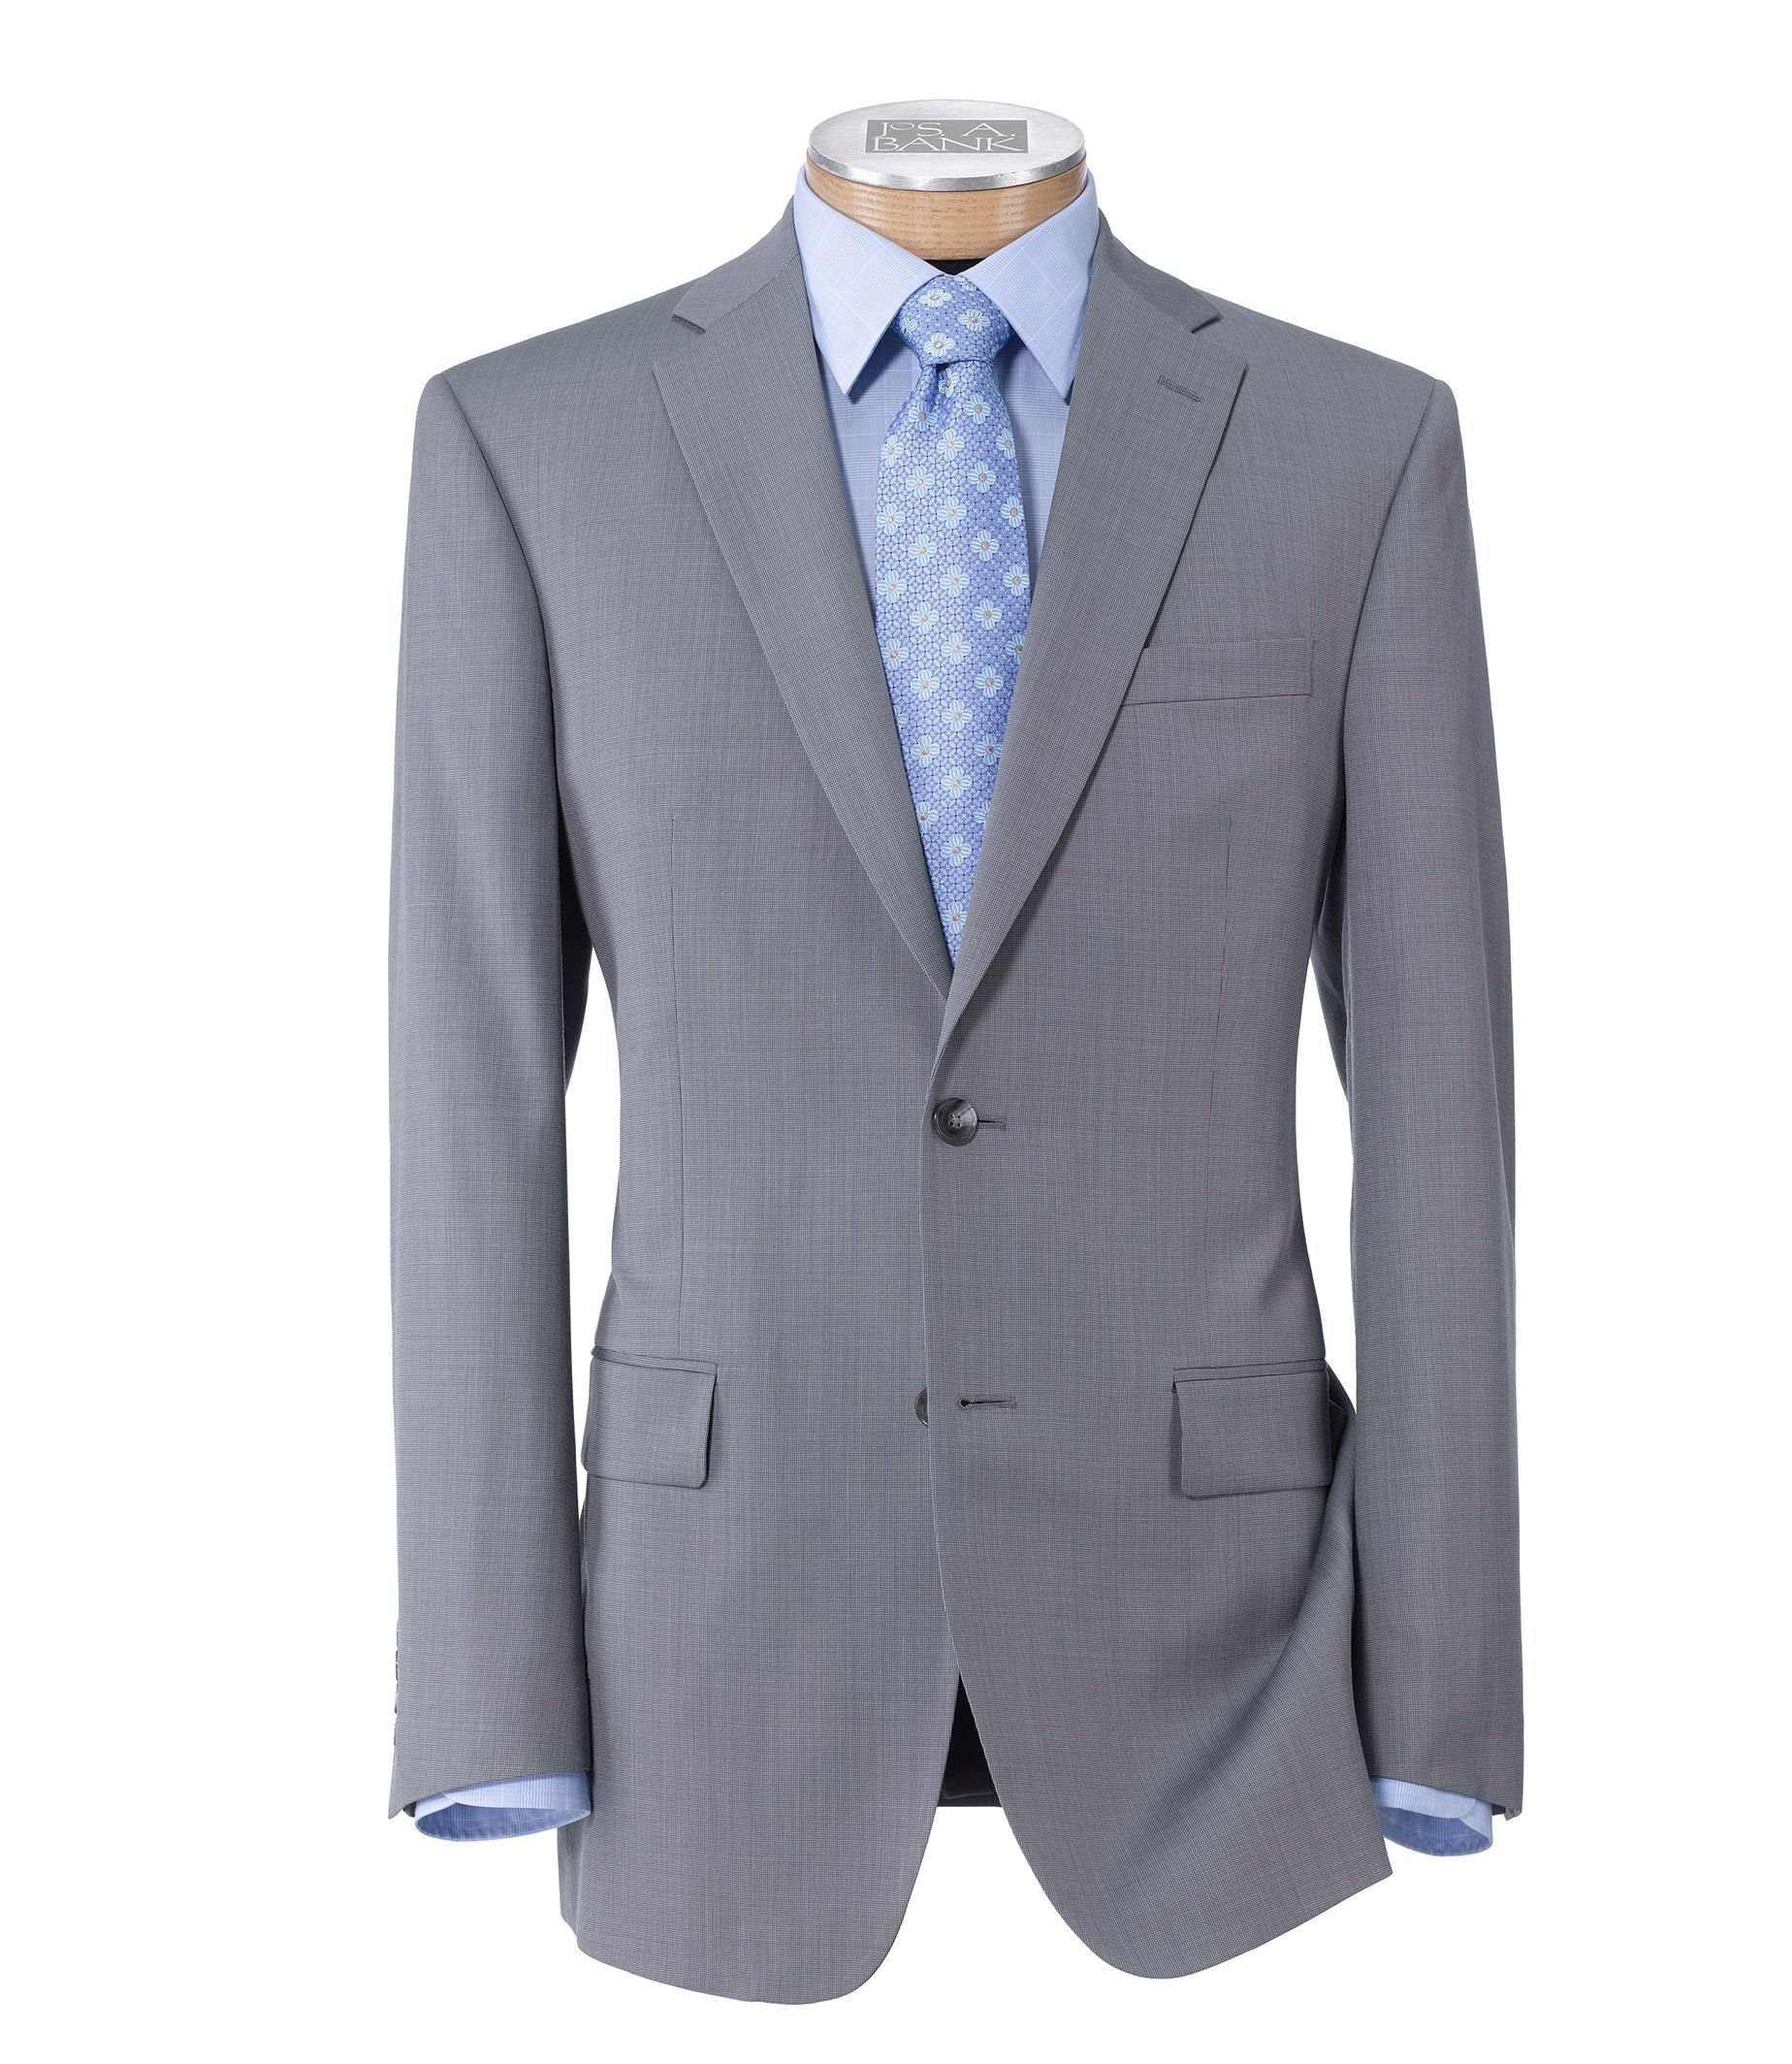 1af0b9c7b5b9 Traveler Tailored Fit 2 Button Plain Front Suit - Big   Tall CLEARANCE